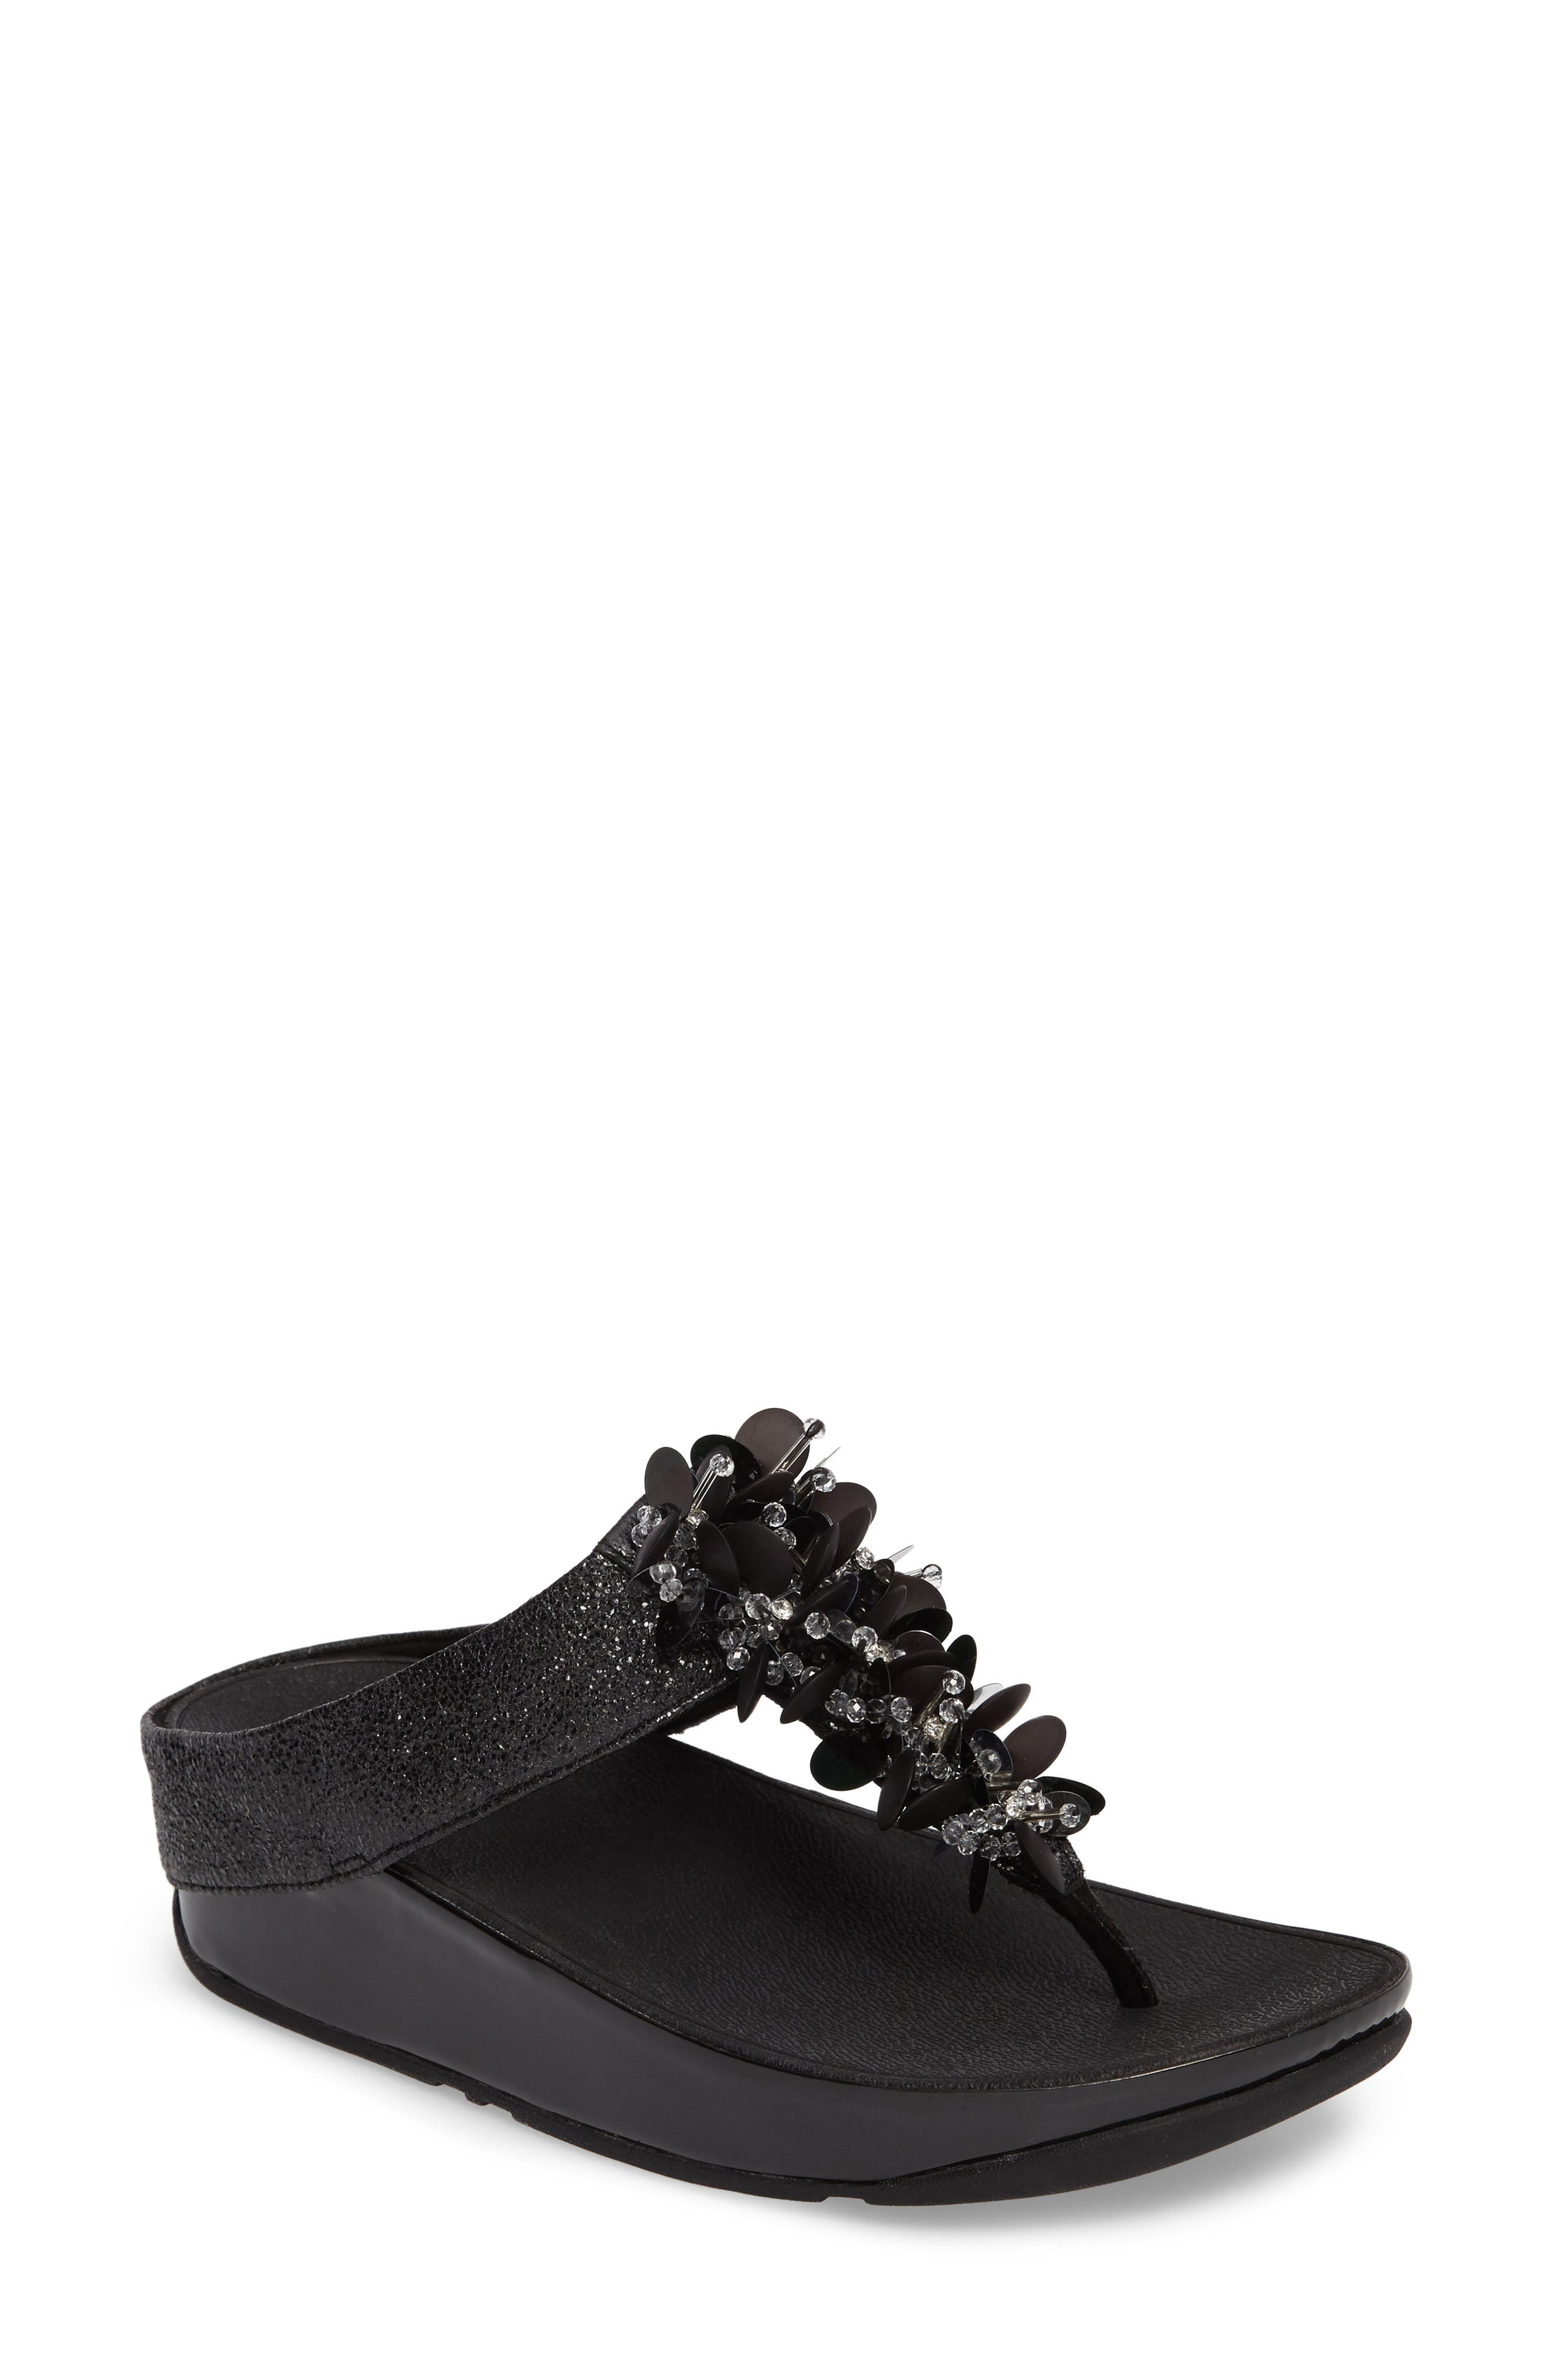 FITFLOP Boogaloo Sandal